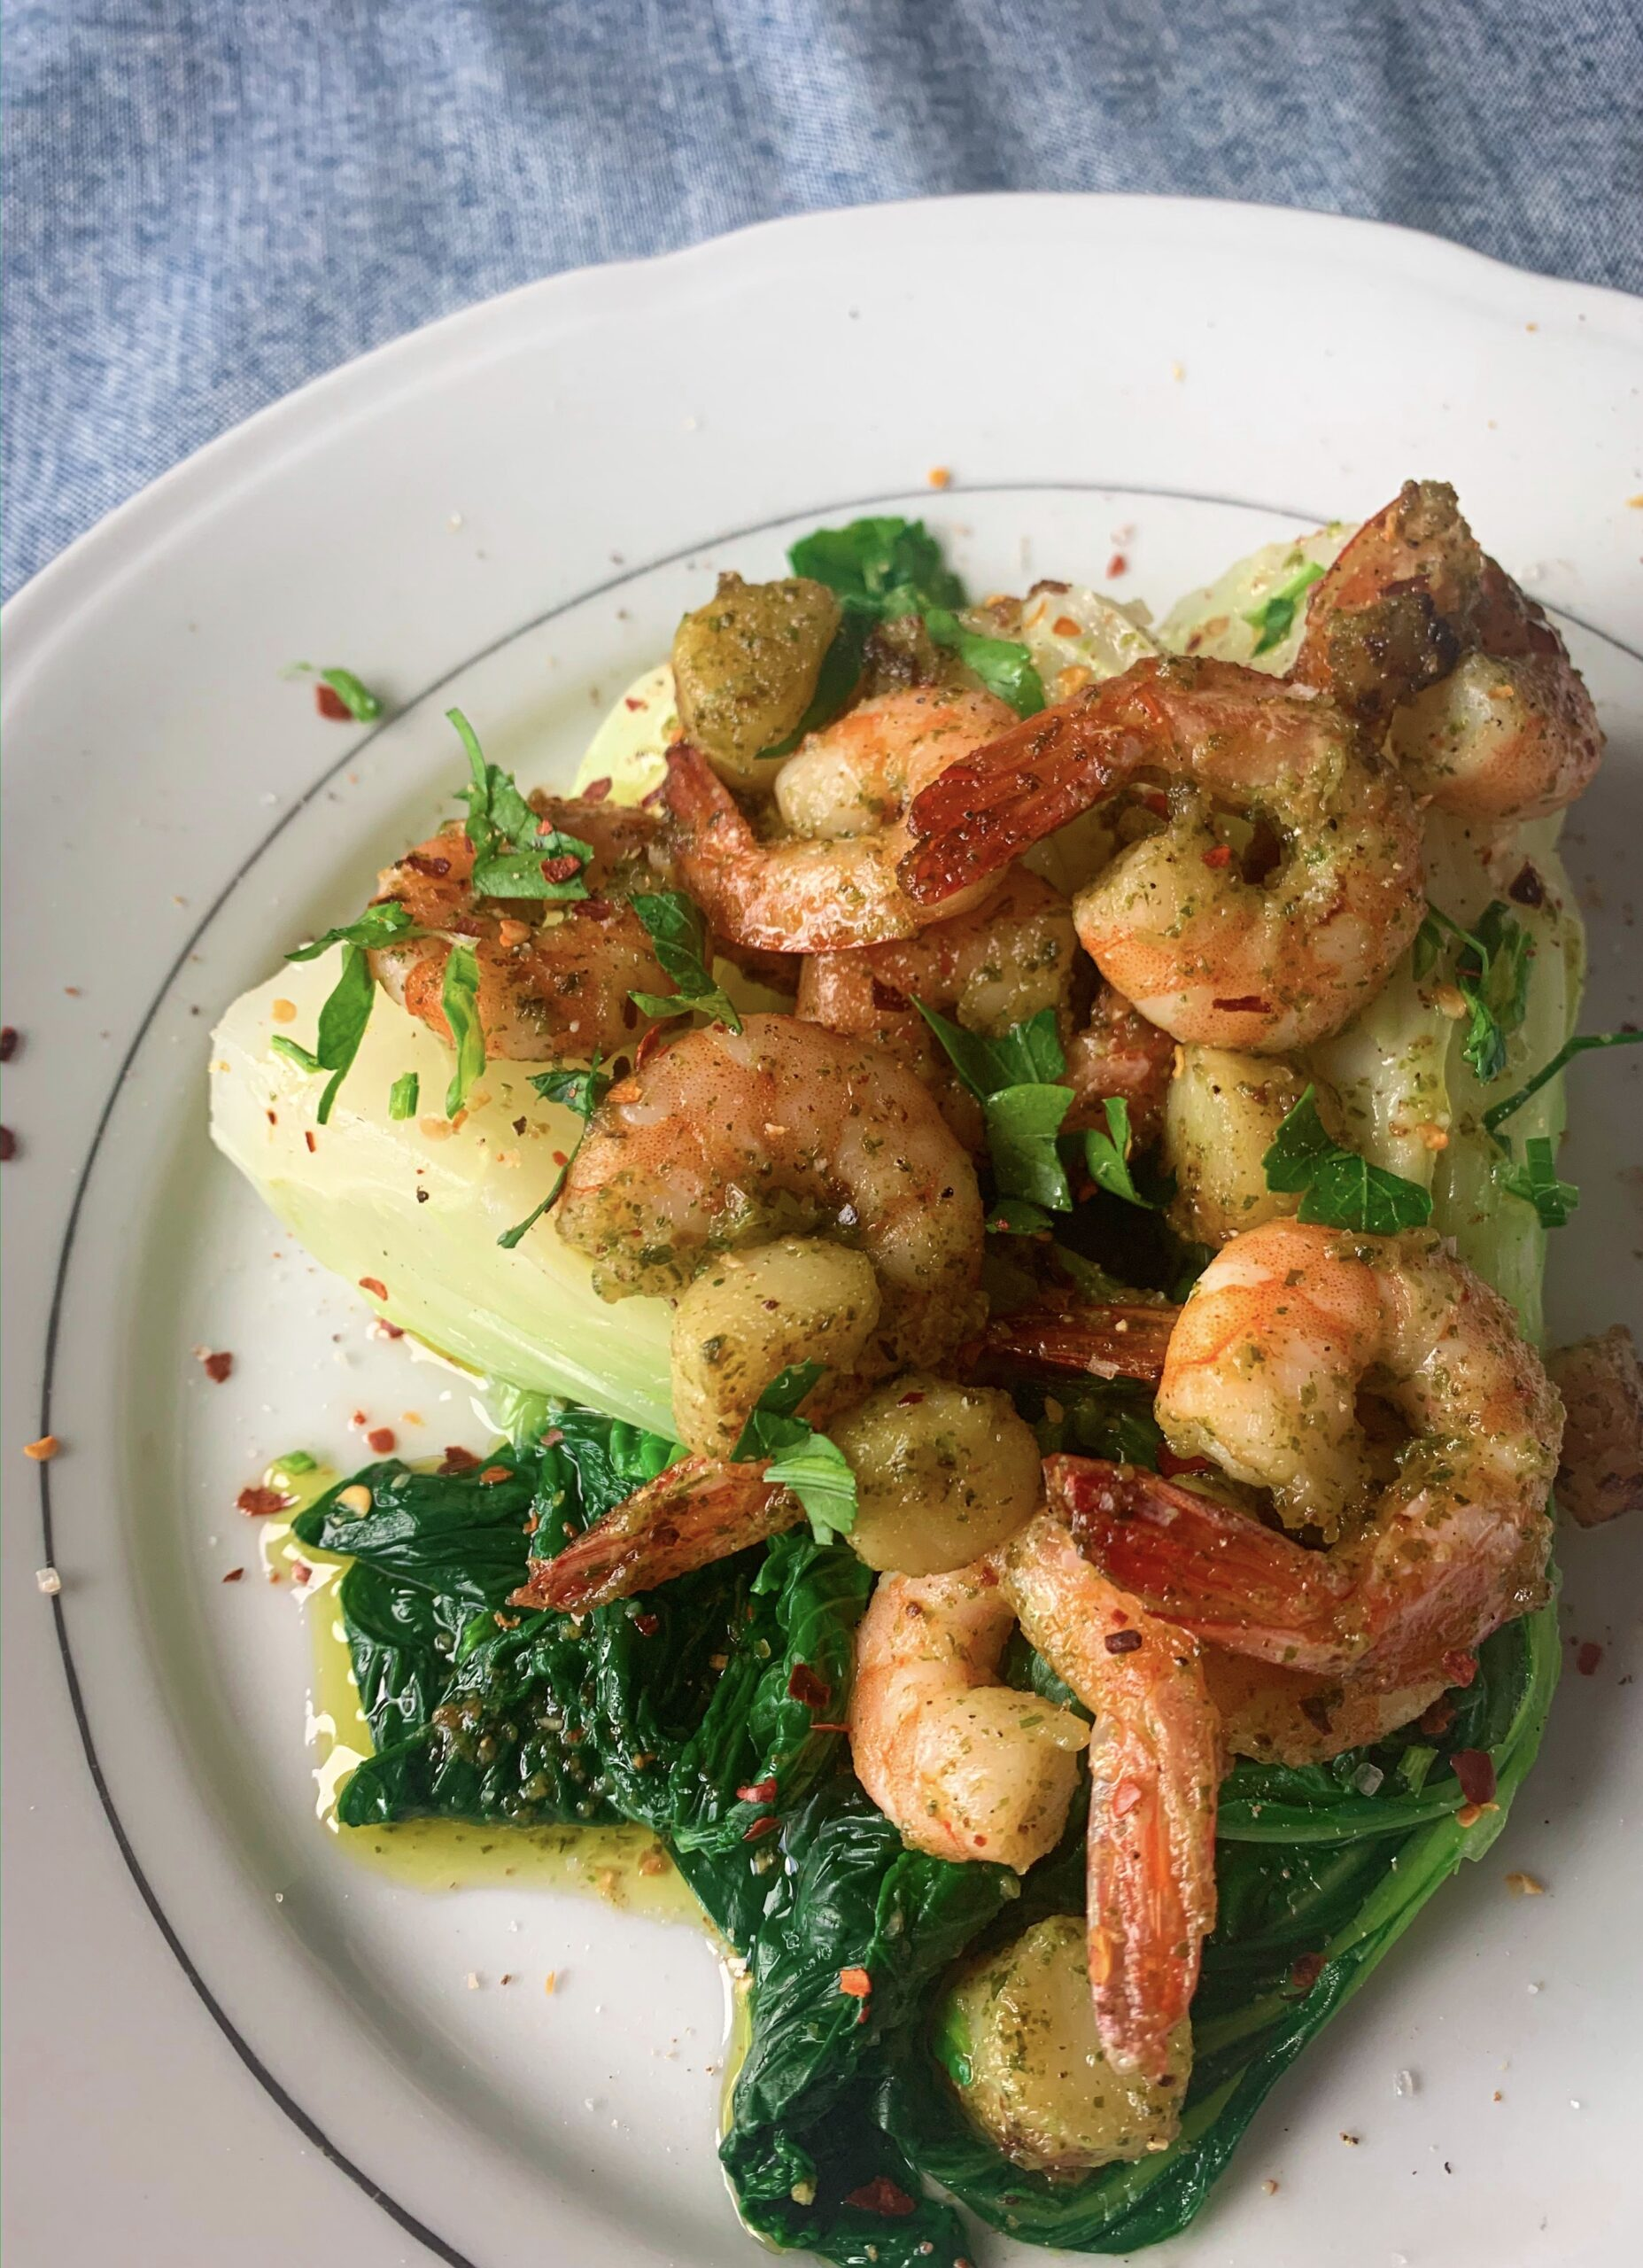 Picture of a plate full of bok choy with scallops and prawns seasoned with garlic and chilli